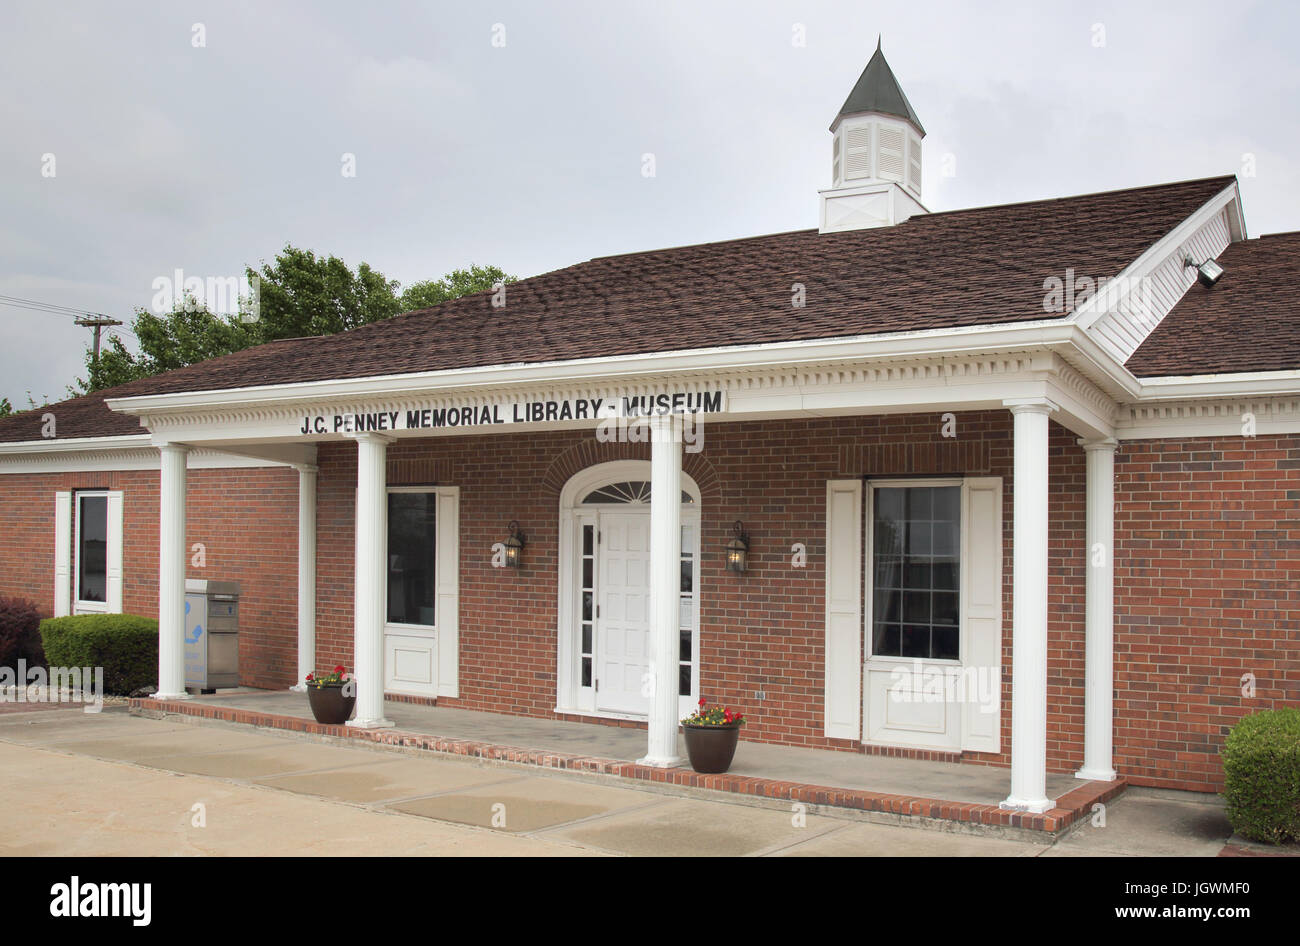 the j c penny library in hamilton missouri - Stock Image